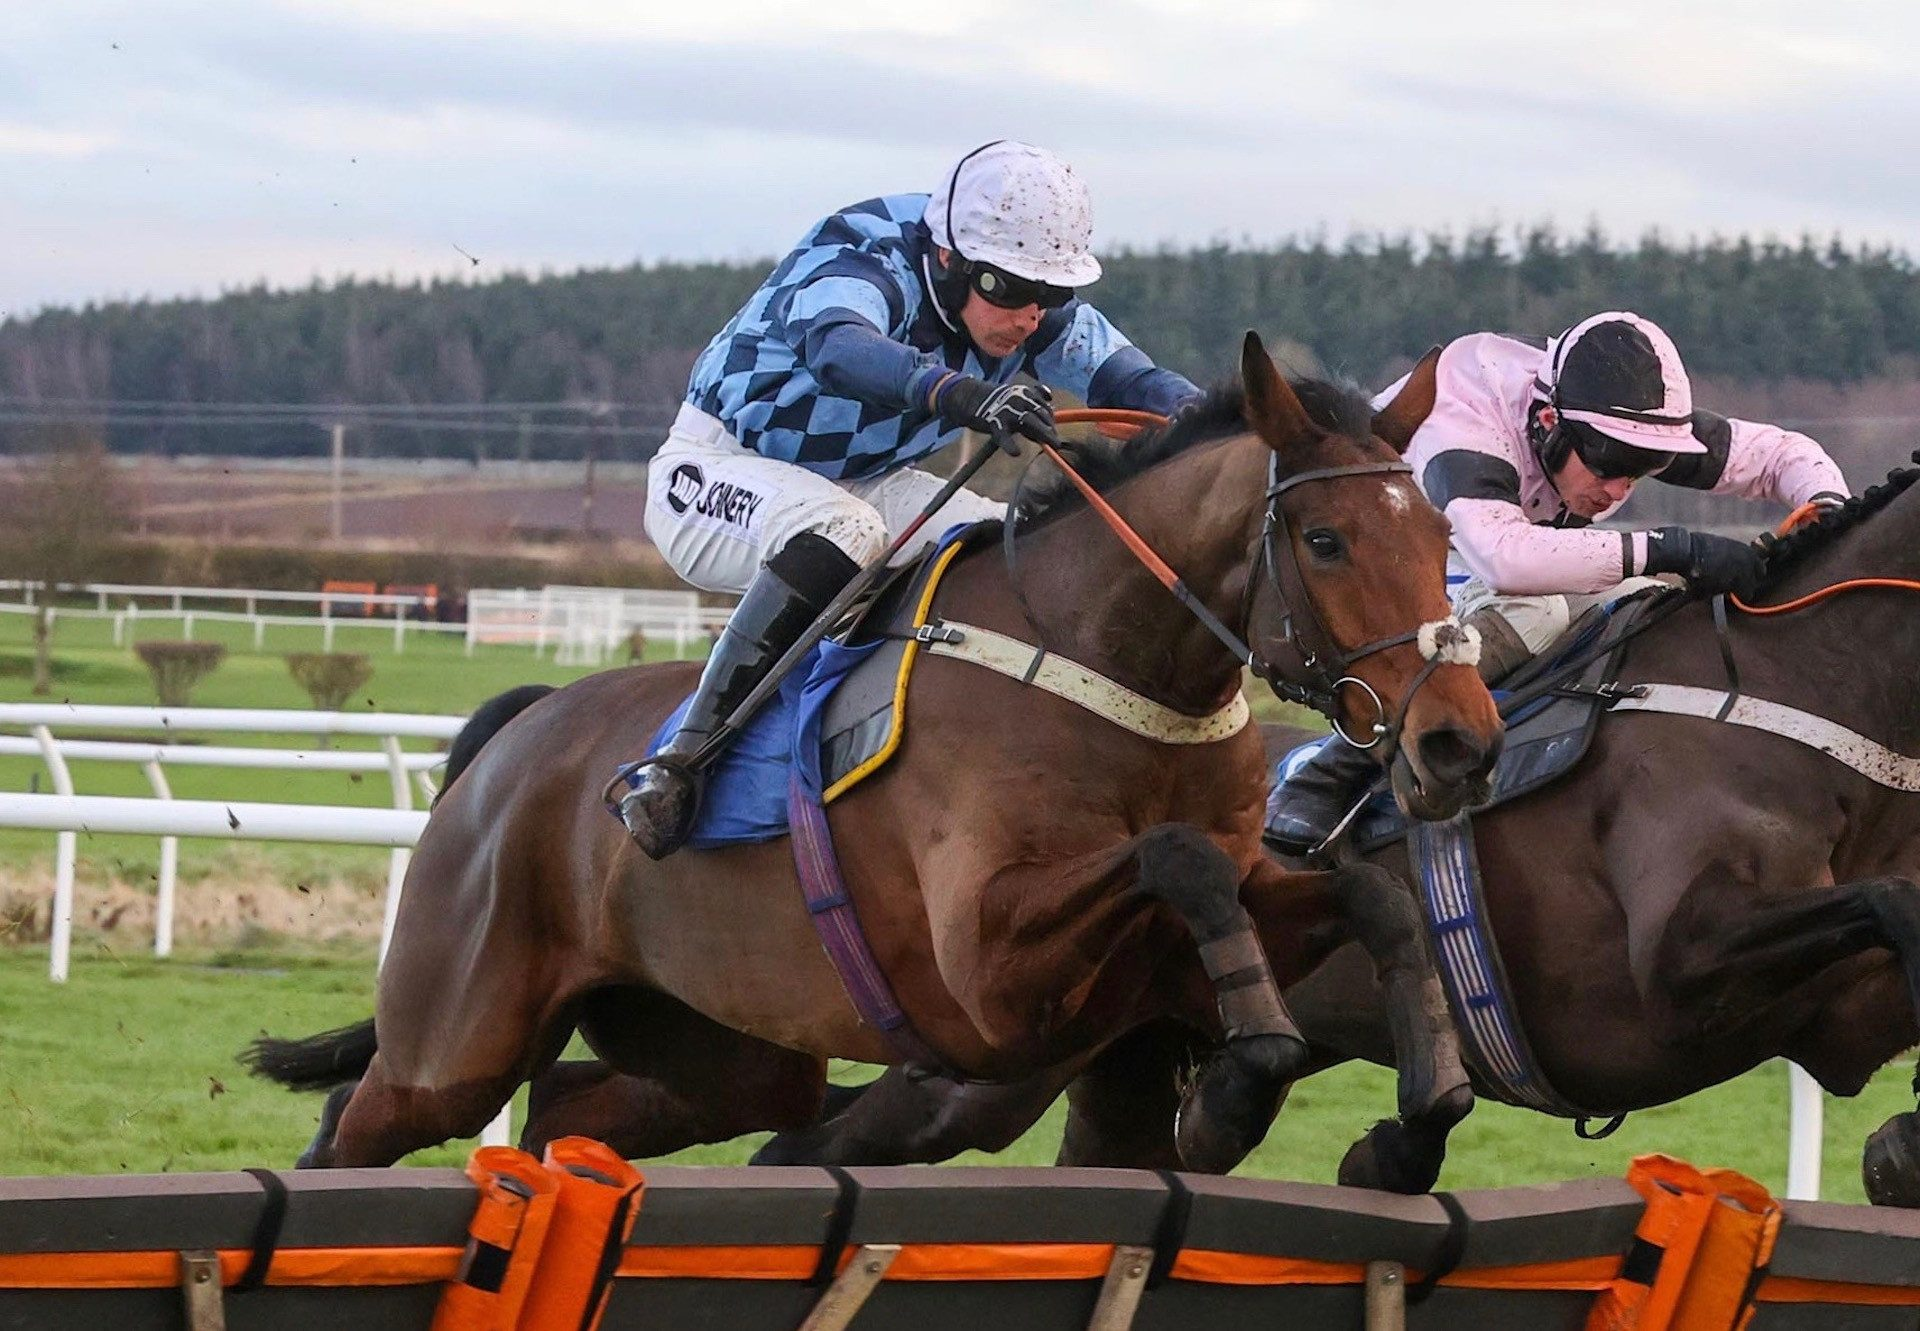 Deluxe Range (Westerner) Wins The Novices Hurdle At Kelso 1